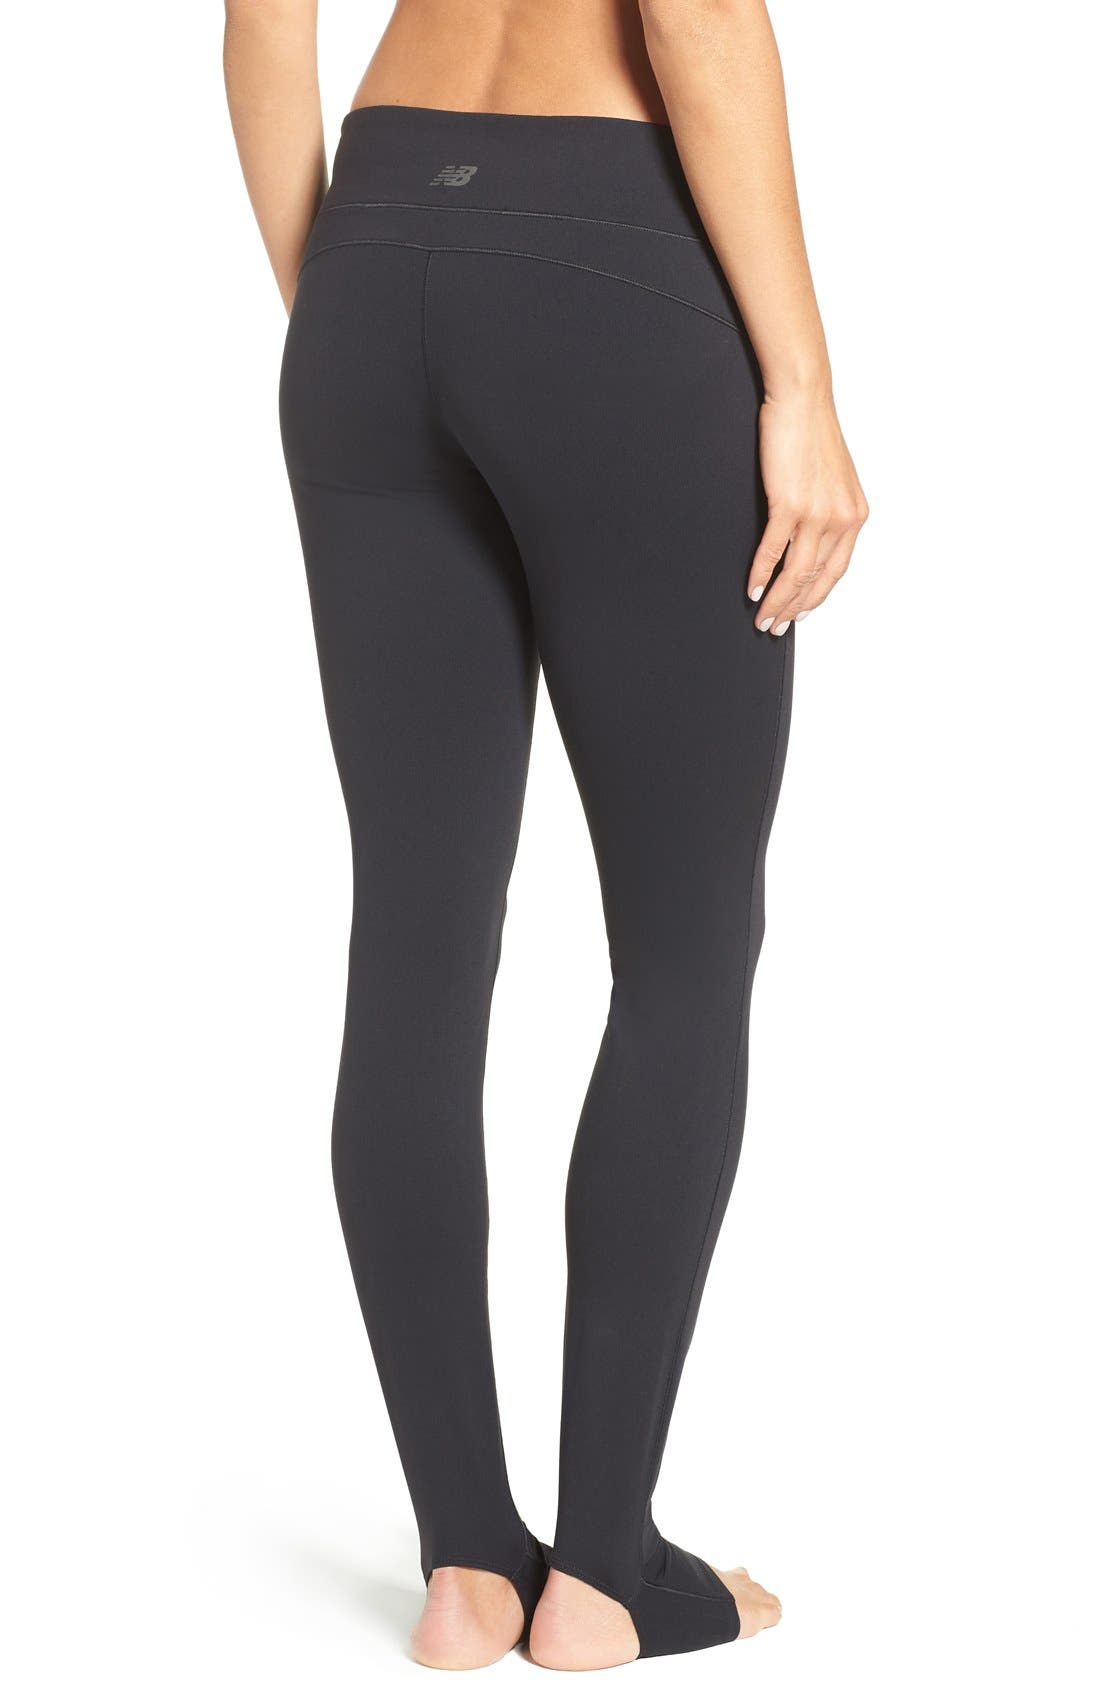 Foiled Stirrup Tights,                             Alternate thumbnail 2, color,                             001